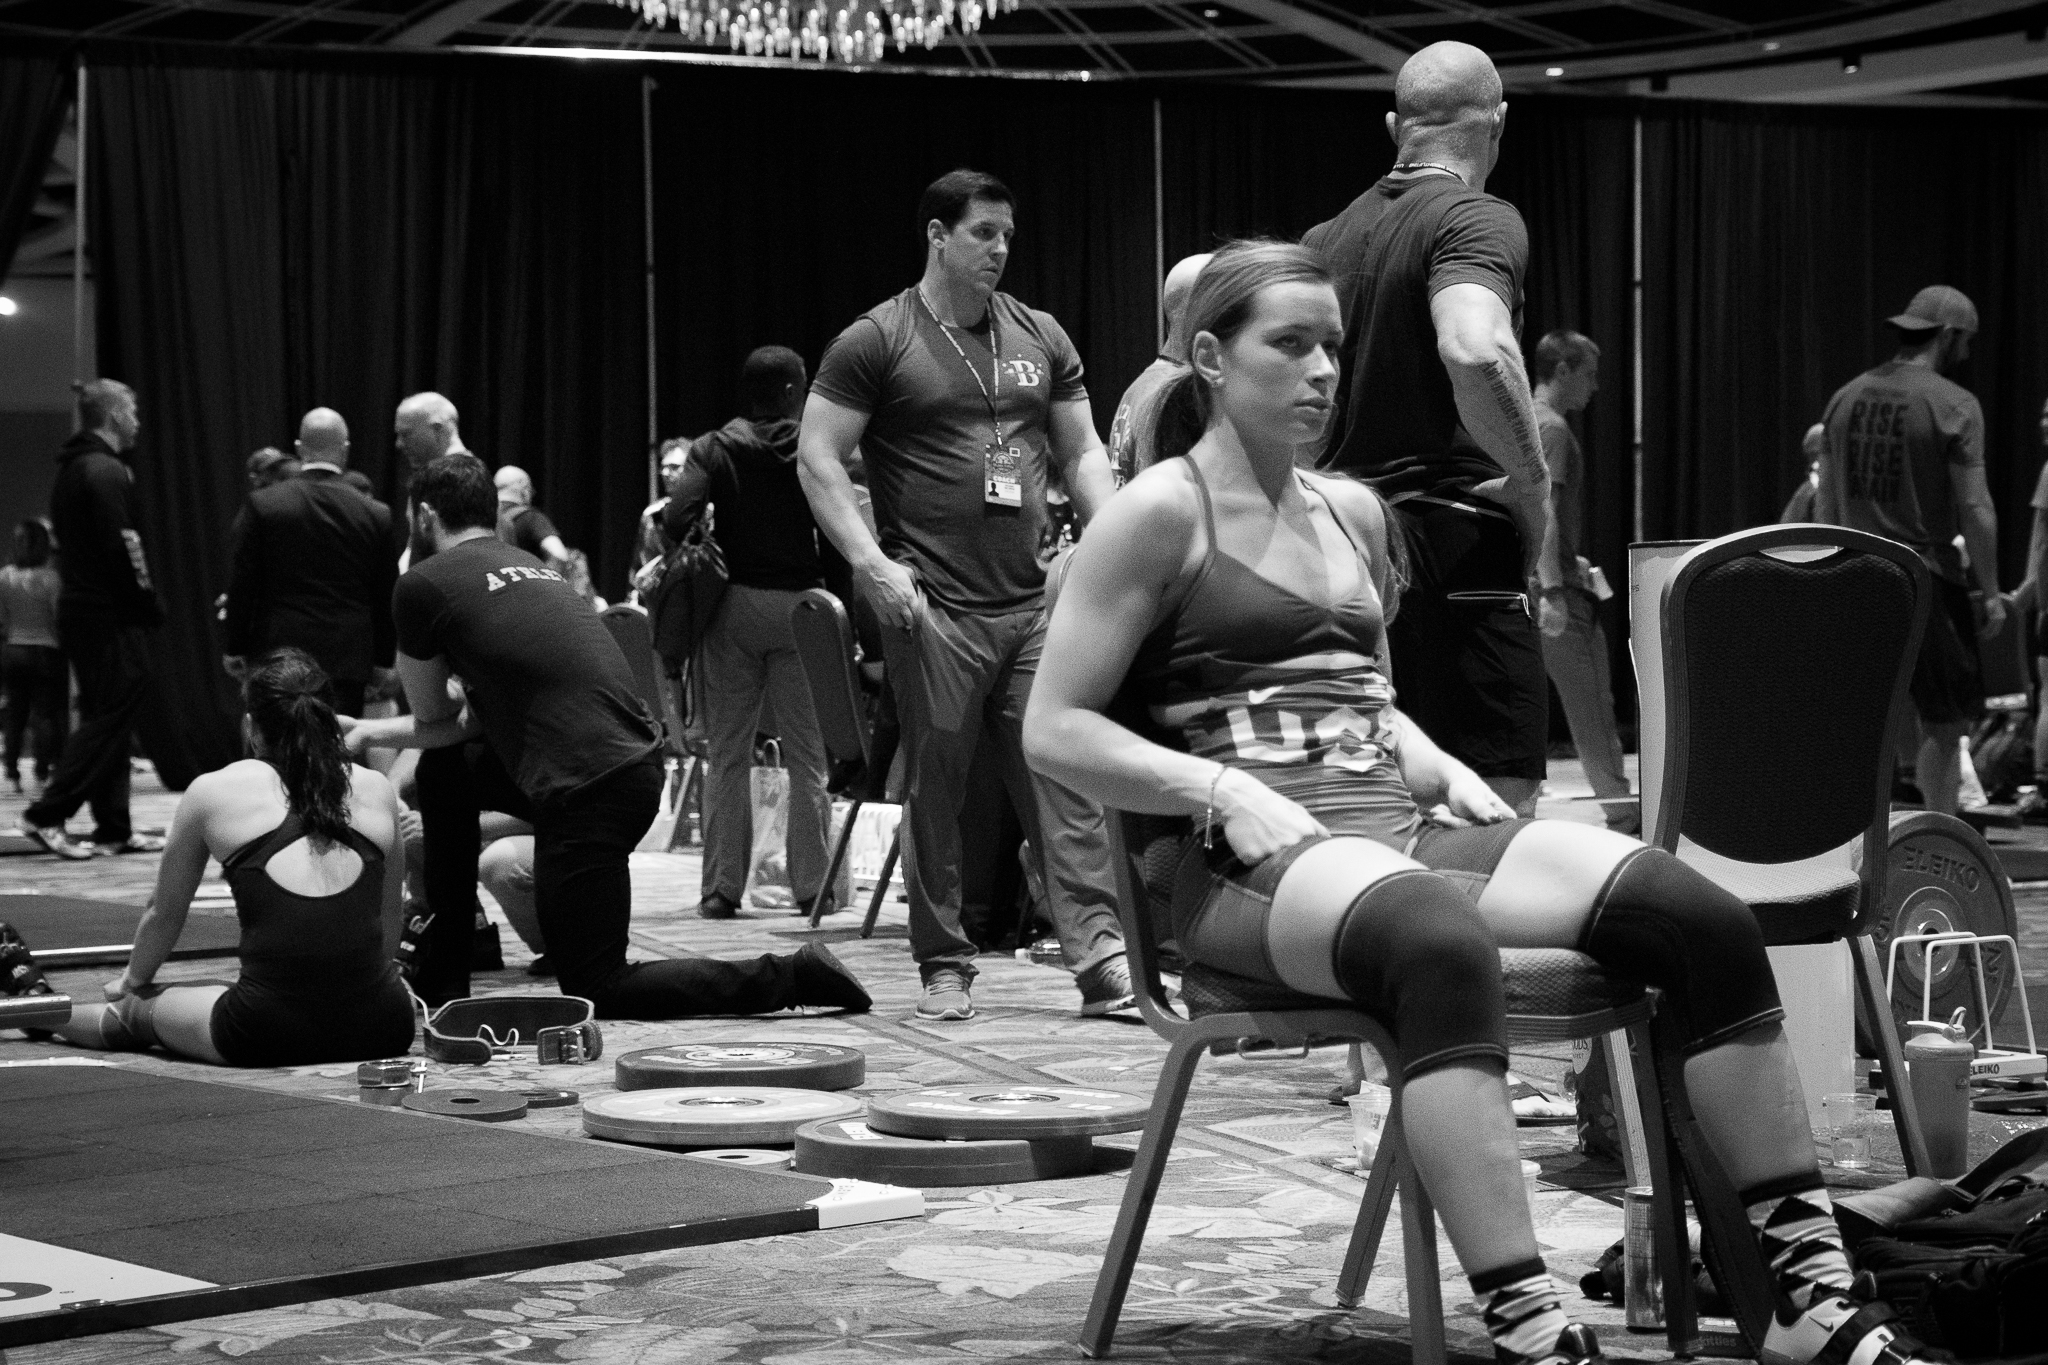 american-open-photos-session-a-weightlifters-weightlifting-photography-everyday-lifters (6 of 10).jpg